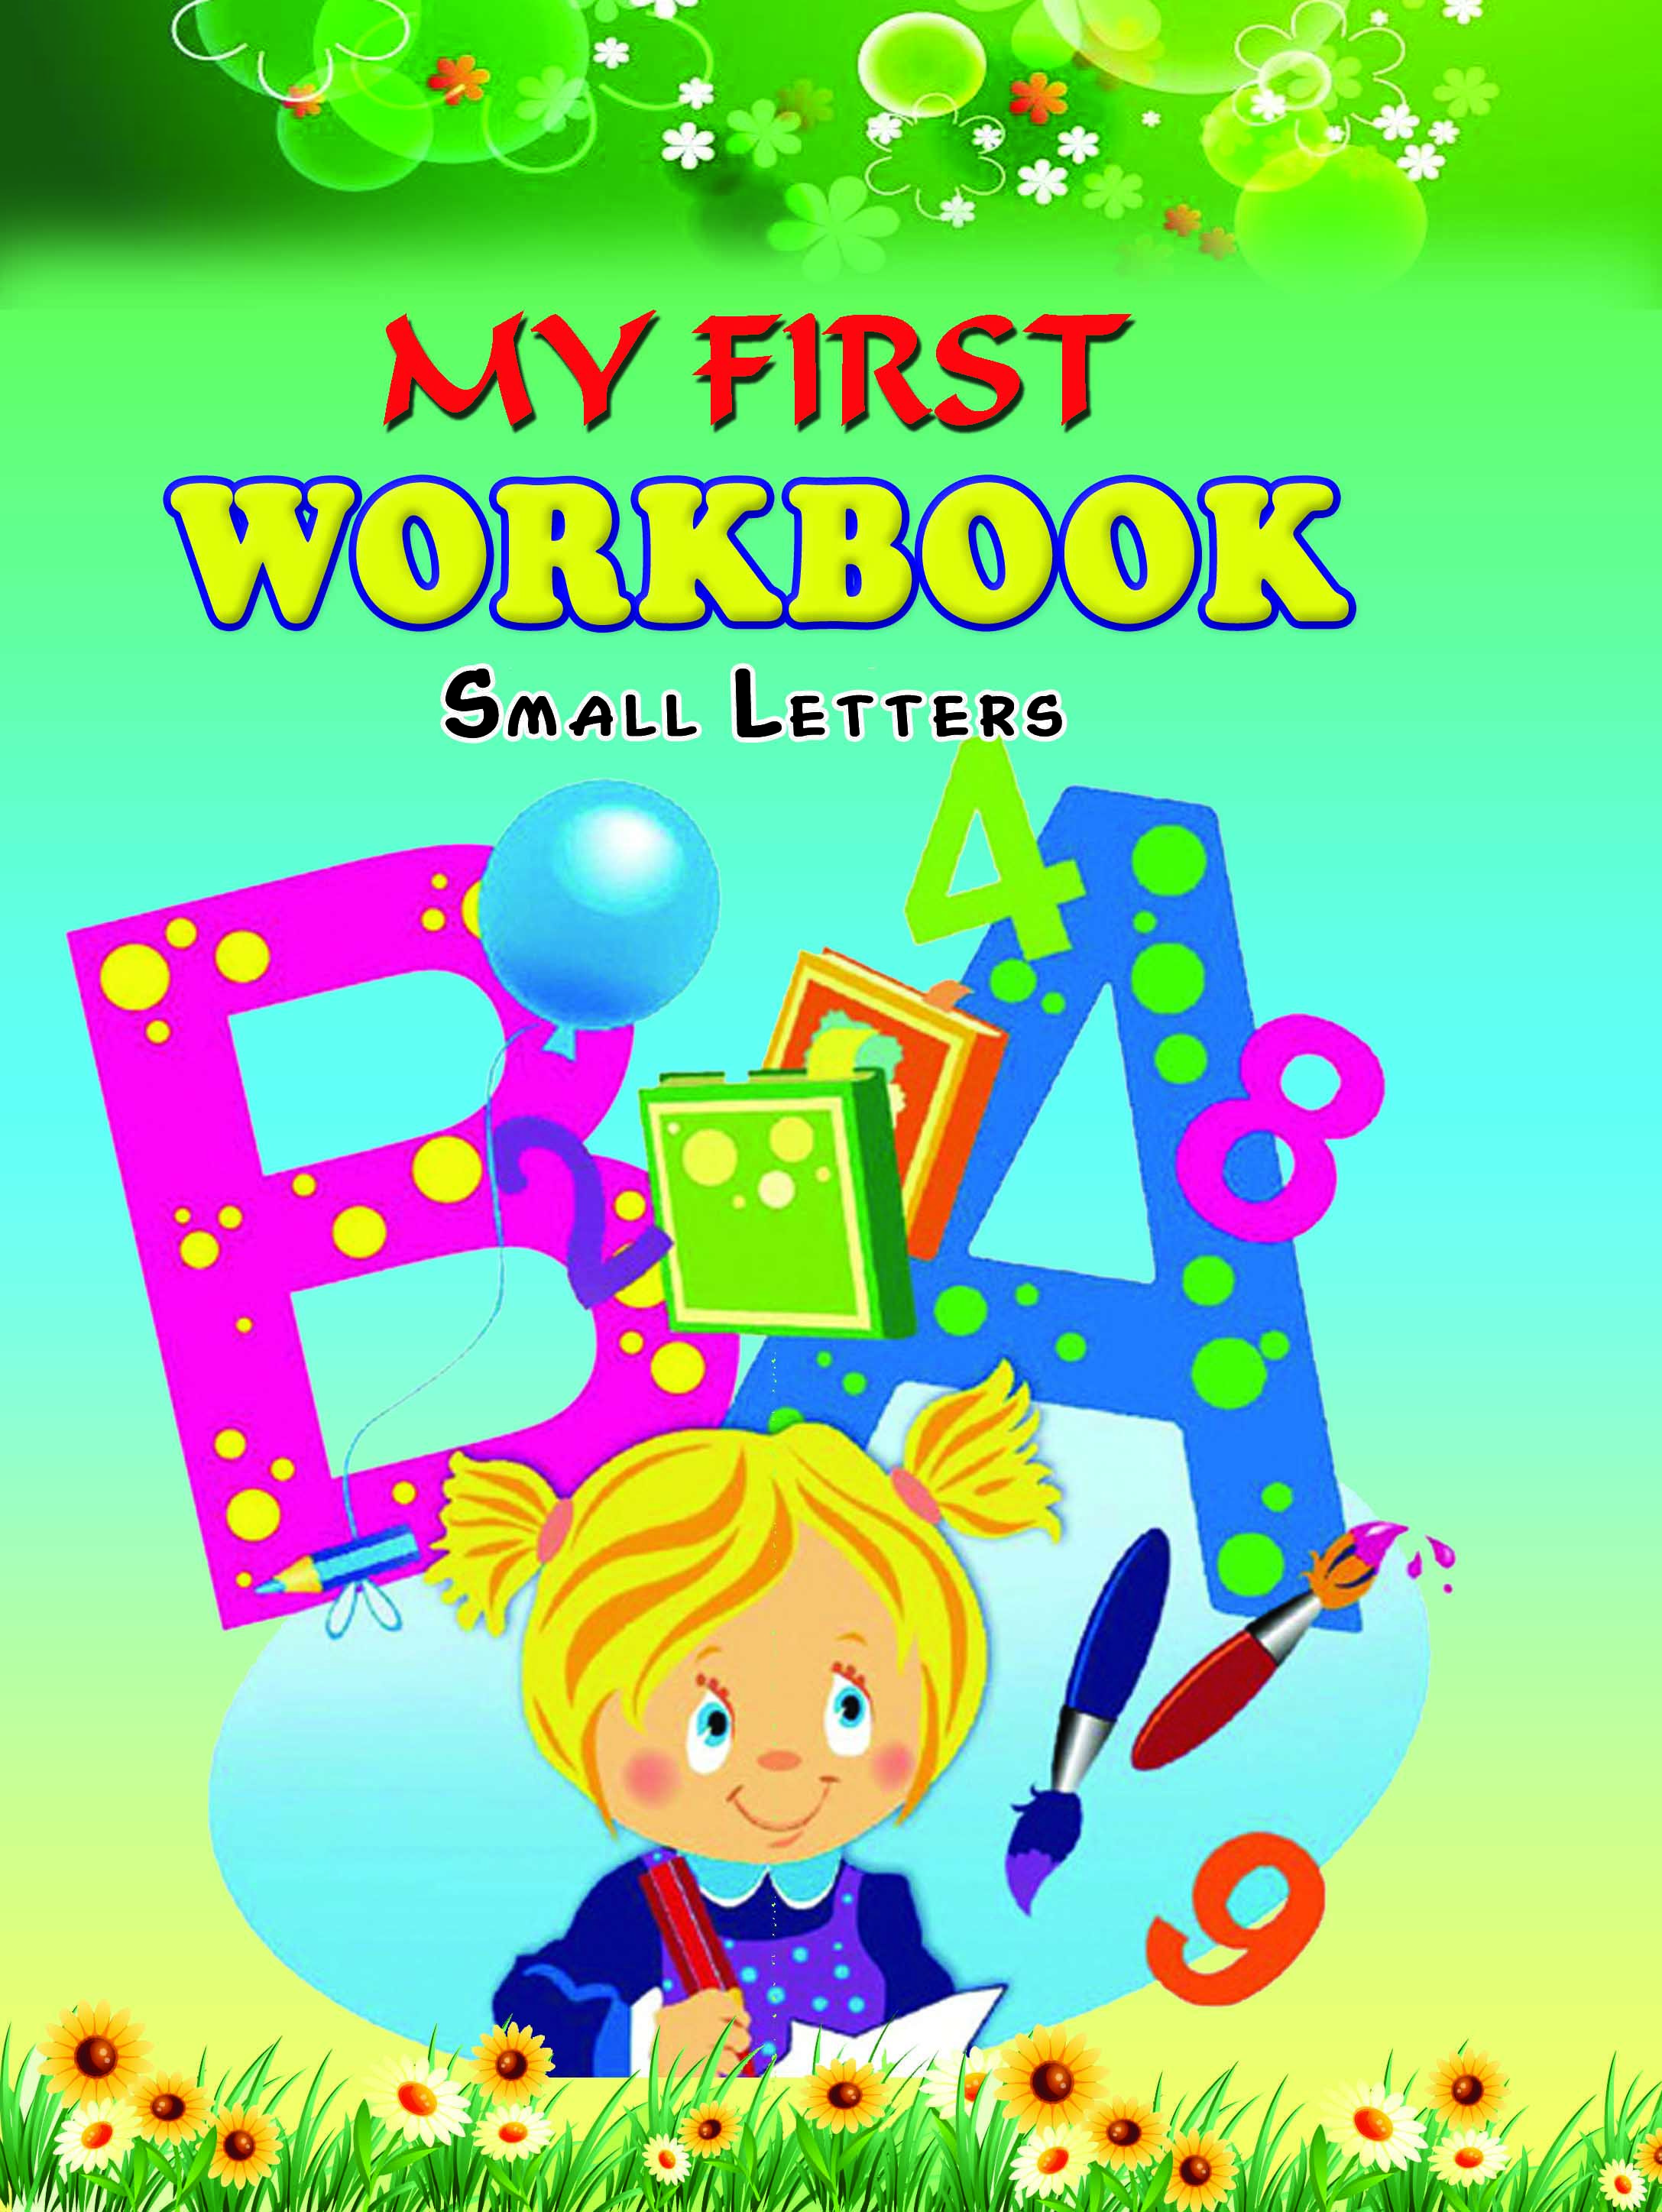 My First Workbook Small Letters